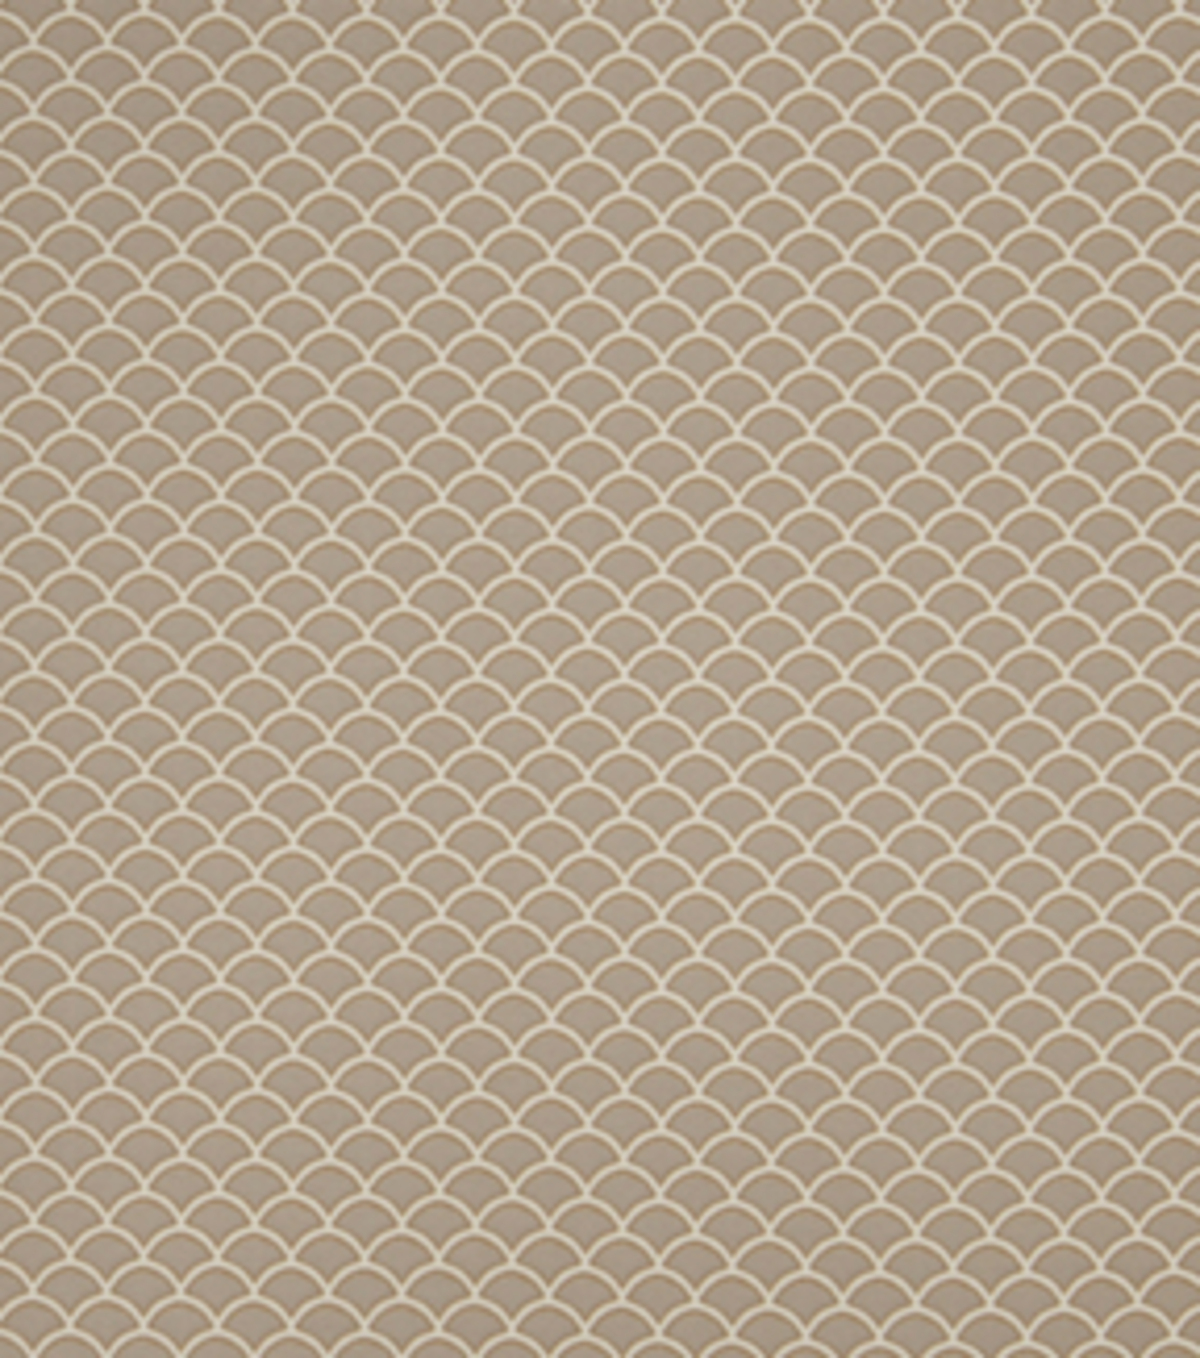 Eaton Square Upholstery Fabric 54\u0022-Sand Dune / Quarry